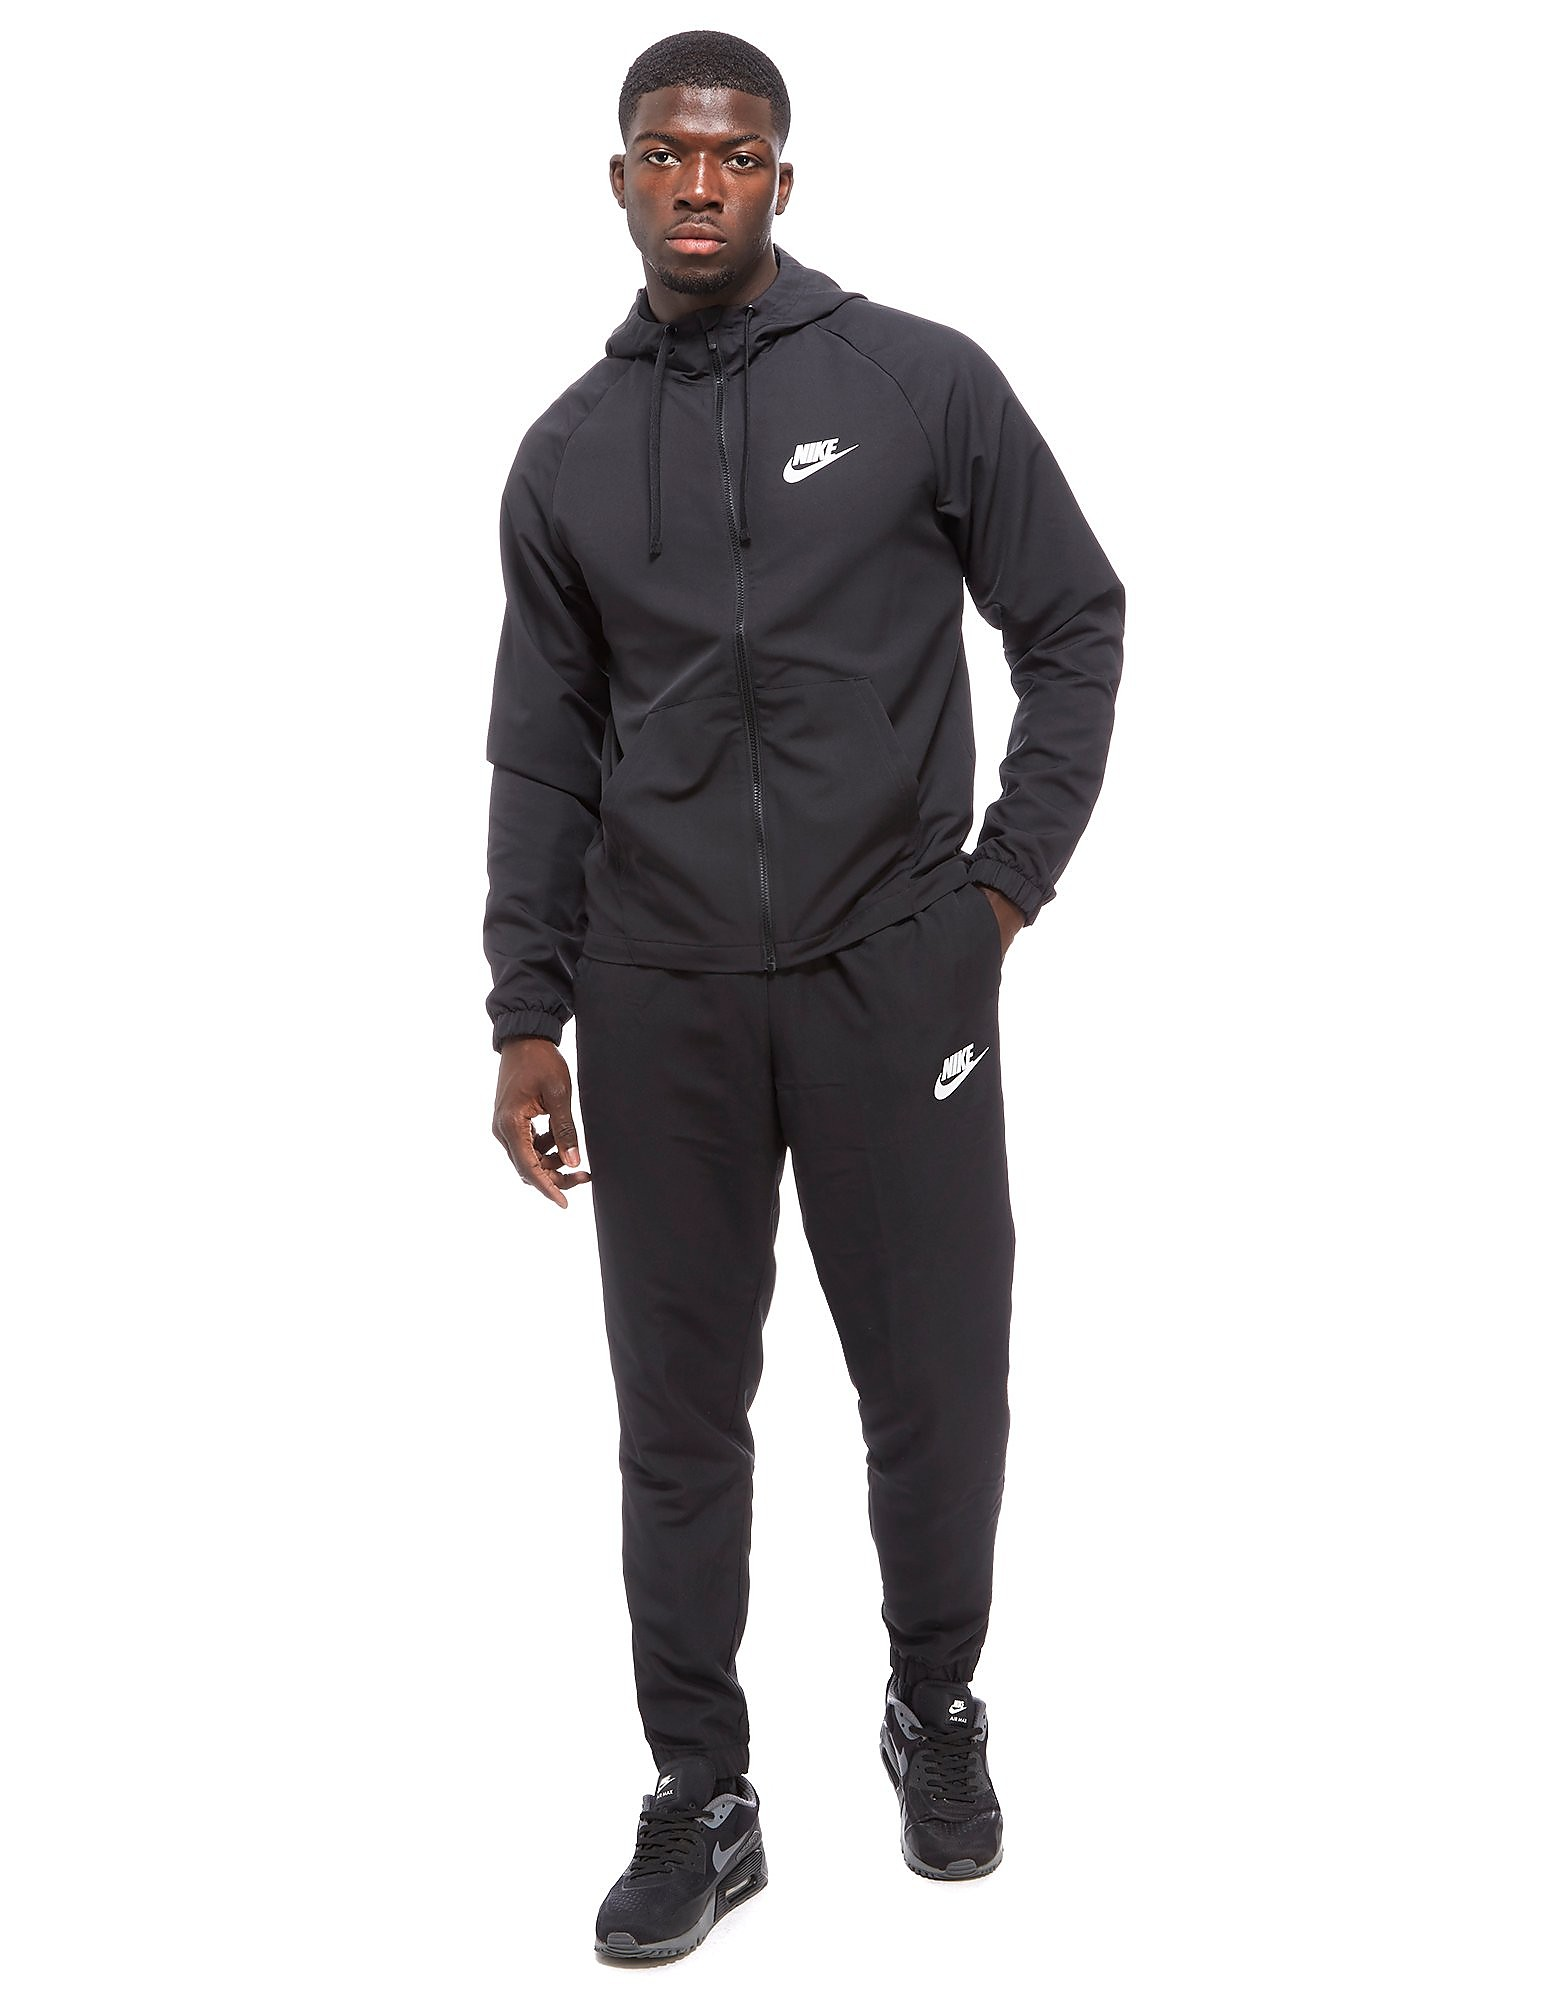 Nike Shut Out 2 Suit